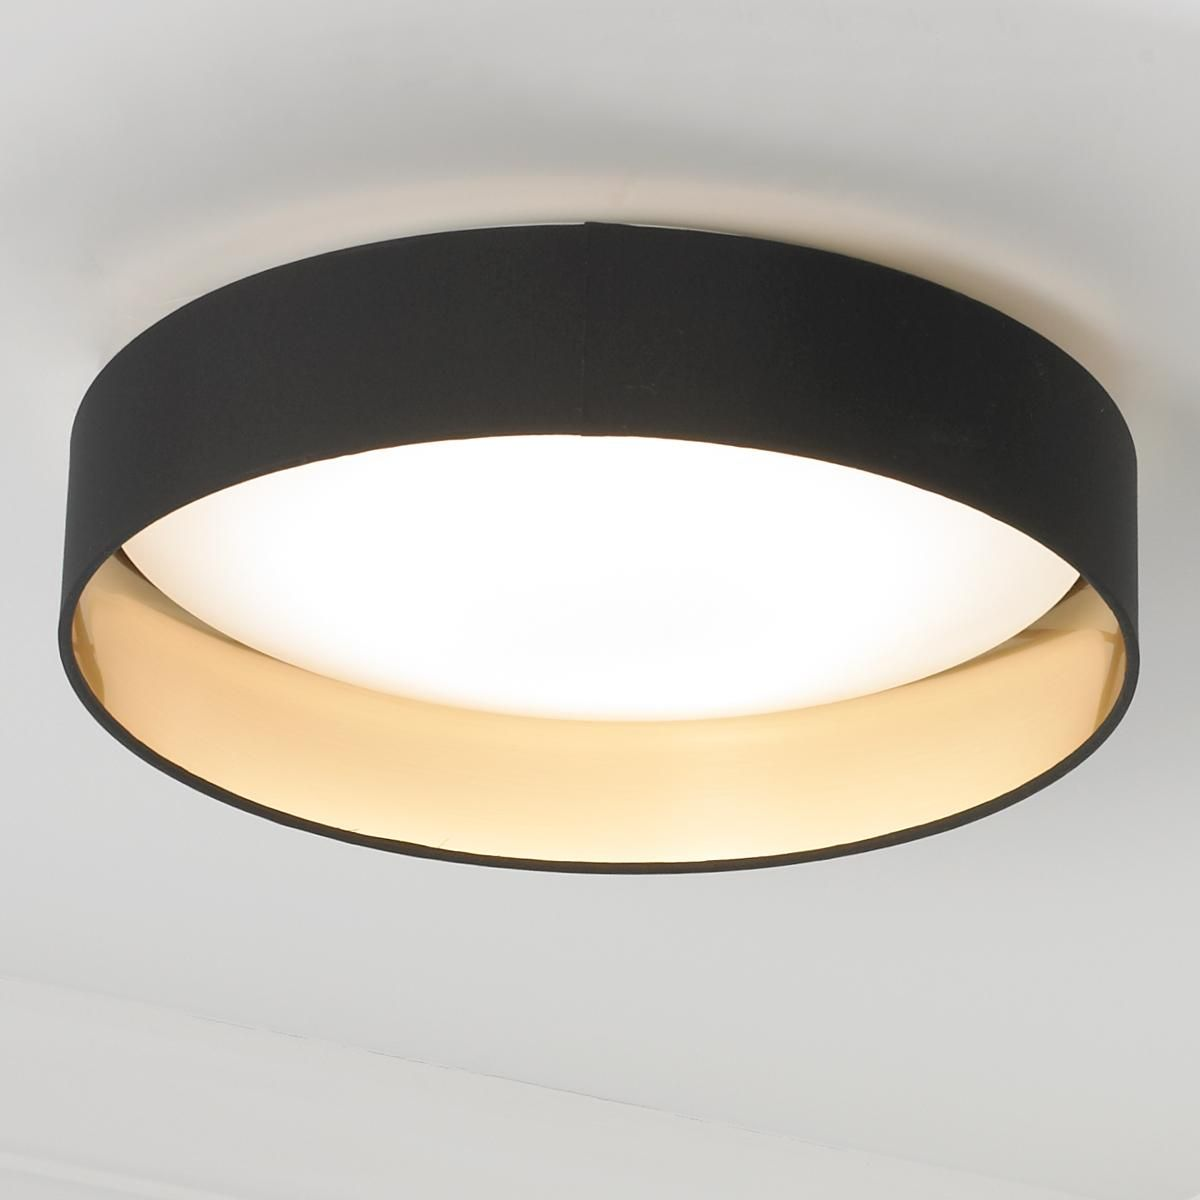 Modern ringed led ceiling light ceiling lights colour black and ceiling arubaitofo Image collections